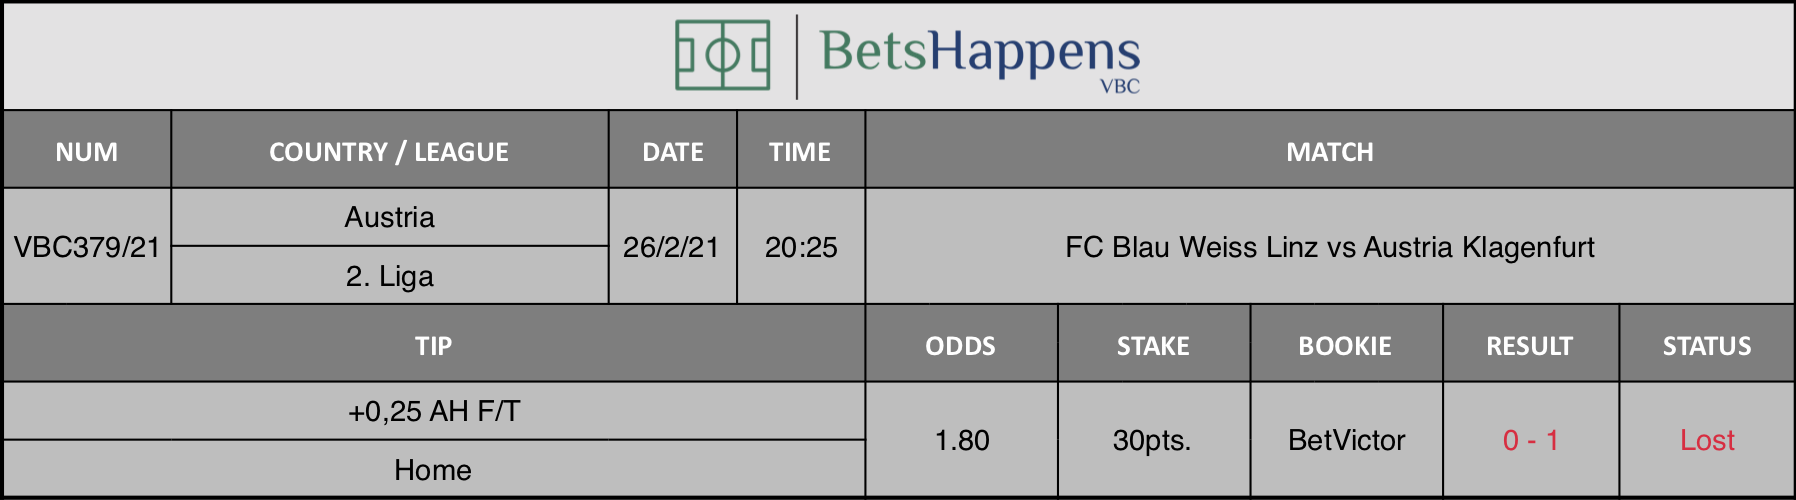 Results of our tip for the FC Blau Weiss Linz vs Austria Klagenfurt match where +0,25 AH F/T  Home is recommended.